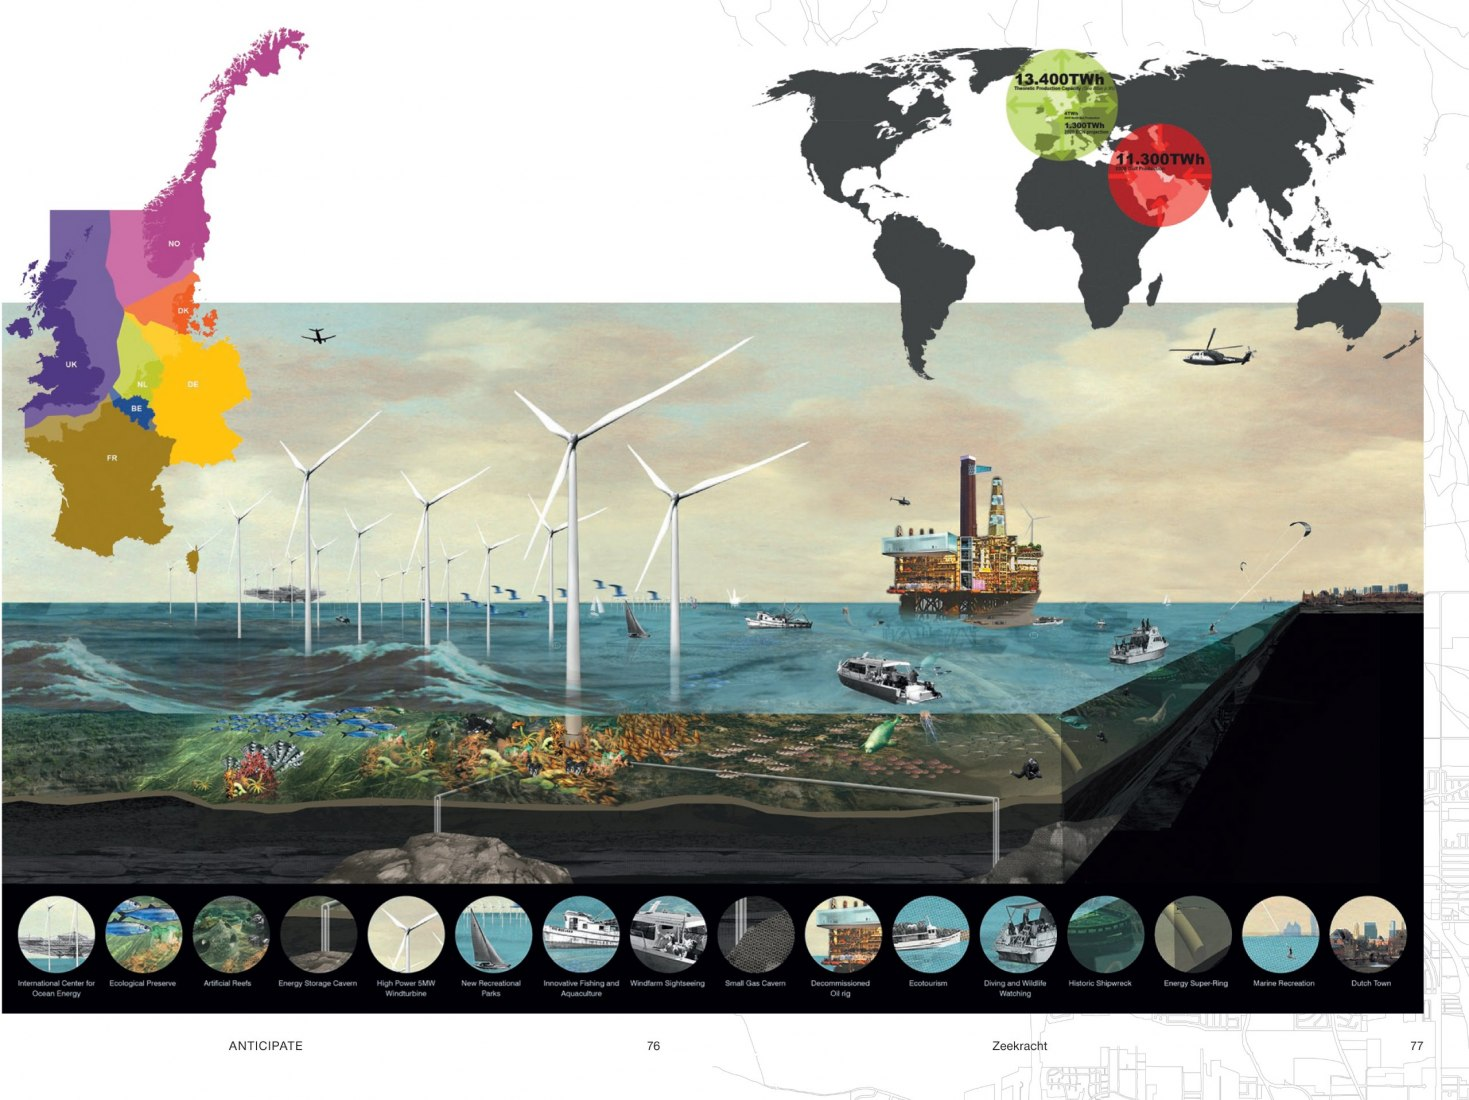 WWF and AMO, a world 100% reliant on renewable energy by 2050